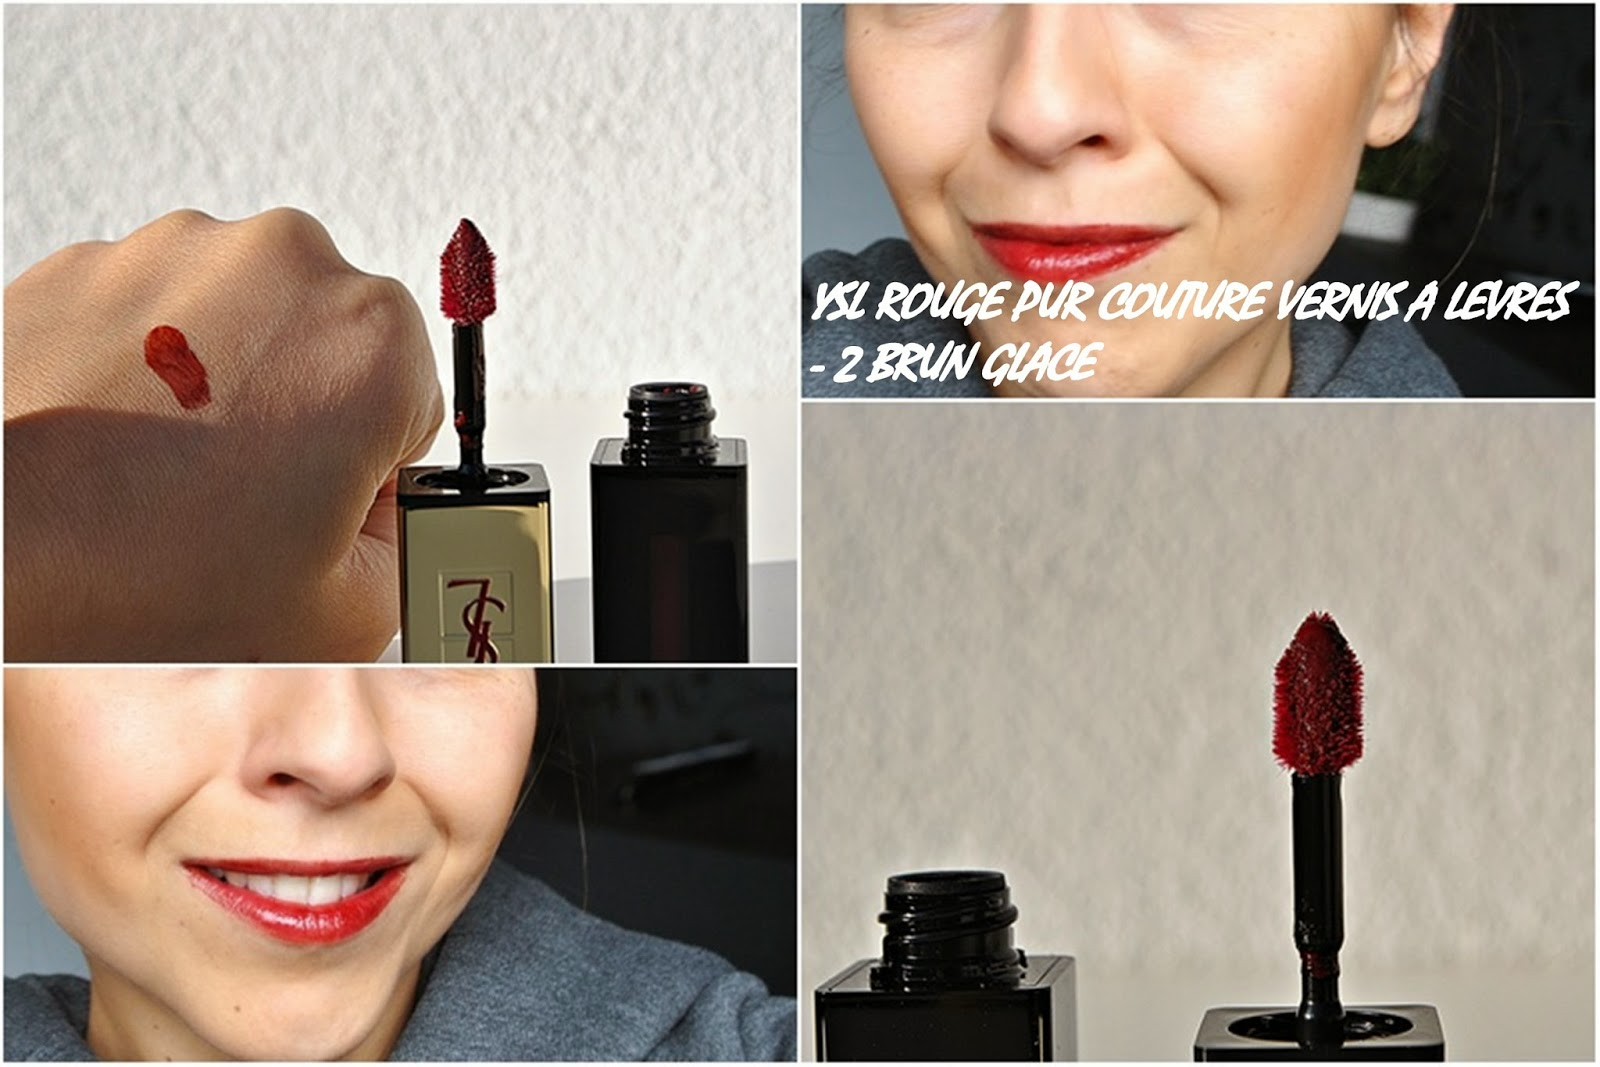 YSL ROUGE PUR COUTURE VERNIS A LEVRES - 2 BRUN GLACE